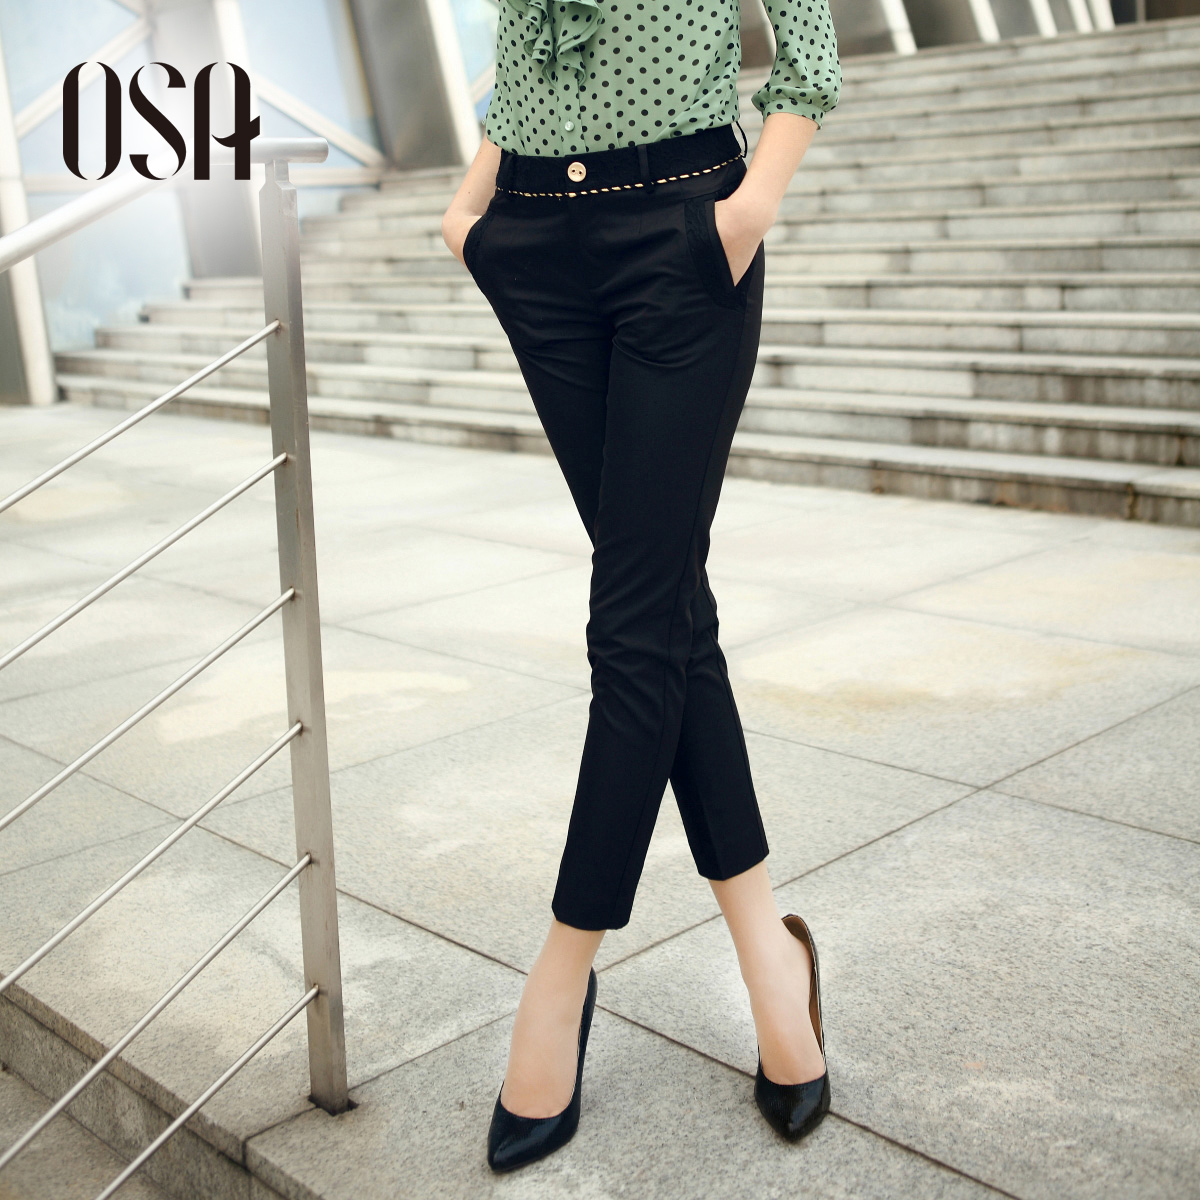 OSA2013 summer dress new skinny women's jeans feet pencil trousers casual pants women pants K33007